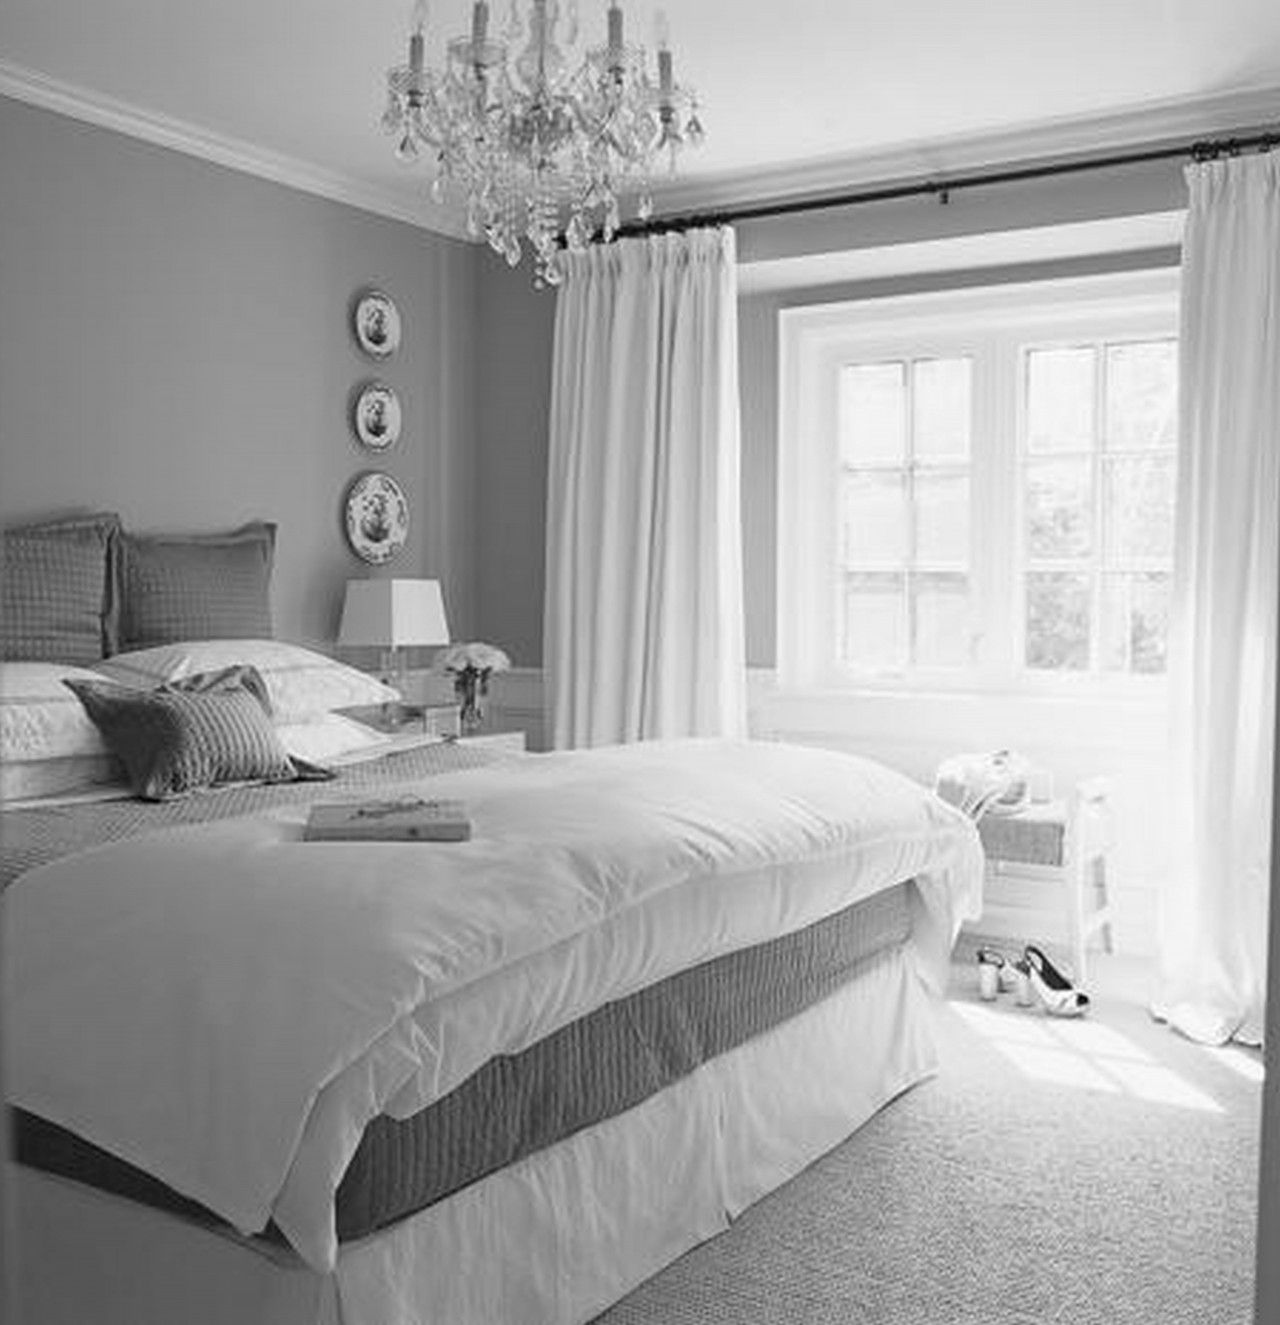 Agreeable Teenage Bedroom Ideas Complexion Entrancing Little Girls Bedroom Ideas Marvelous Decoration Coloratio Light Gray Bedroom White Bedroom Bedroom Colors